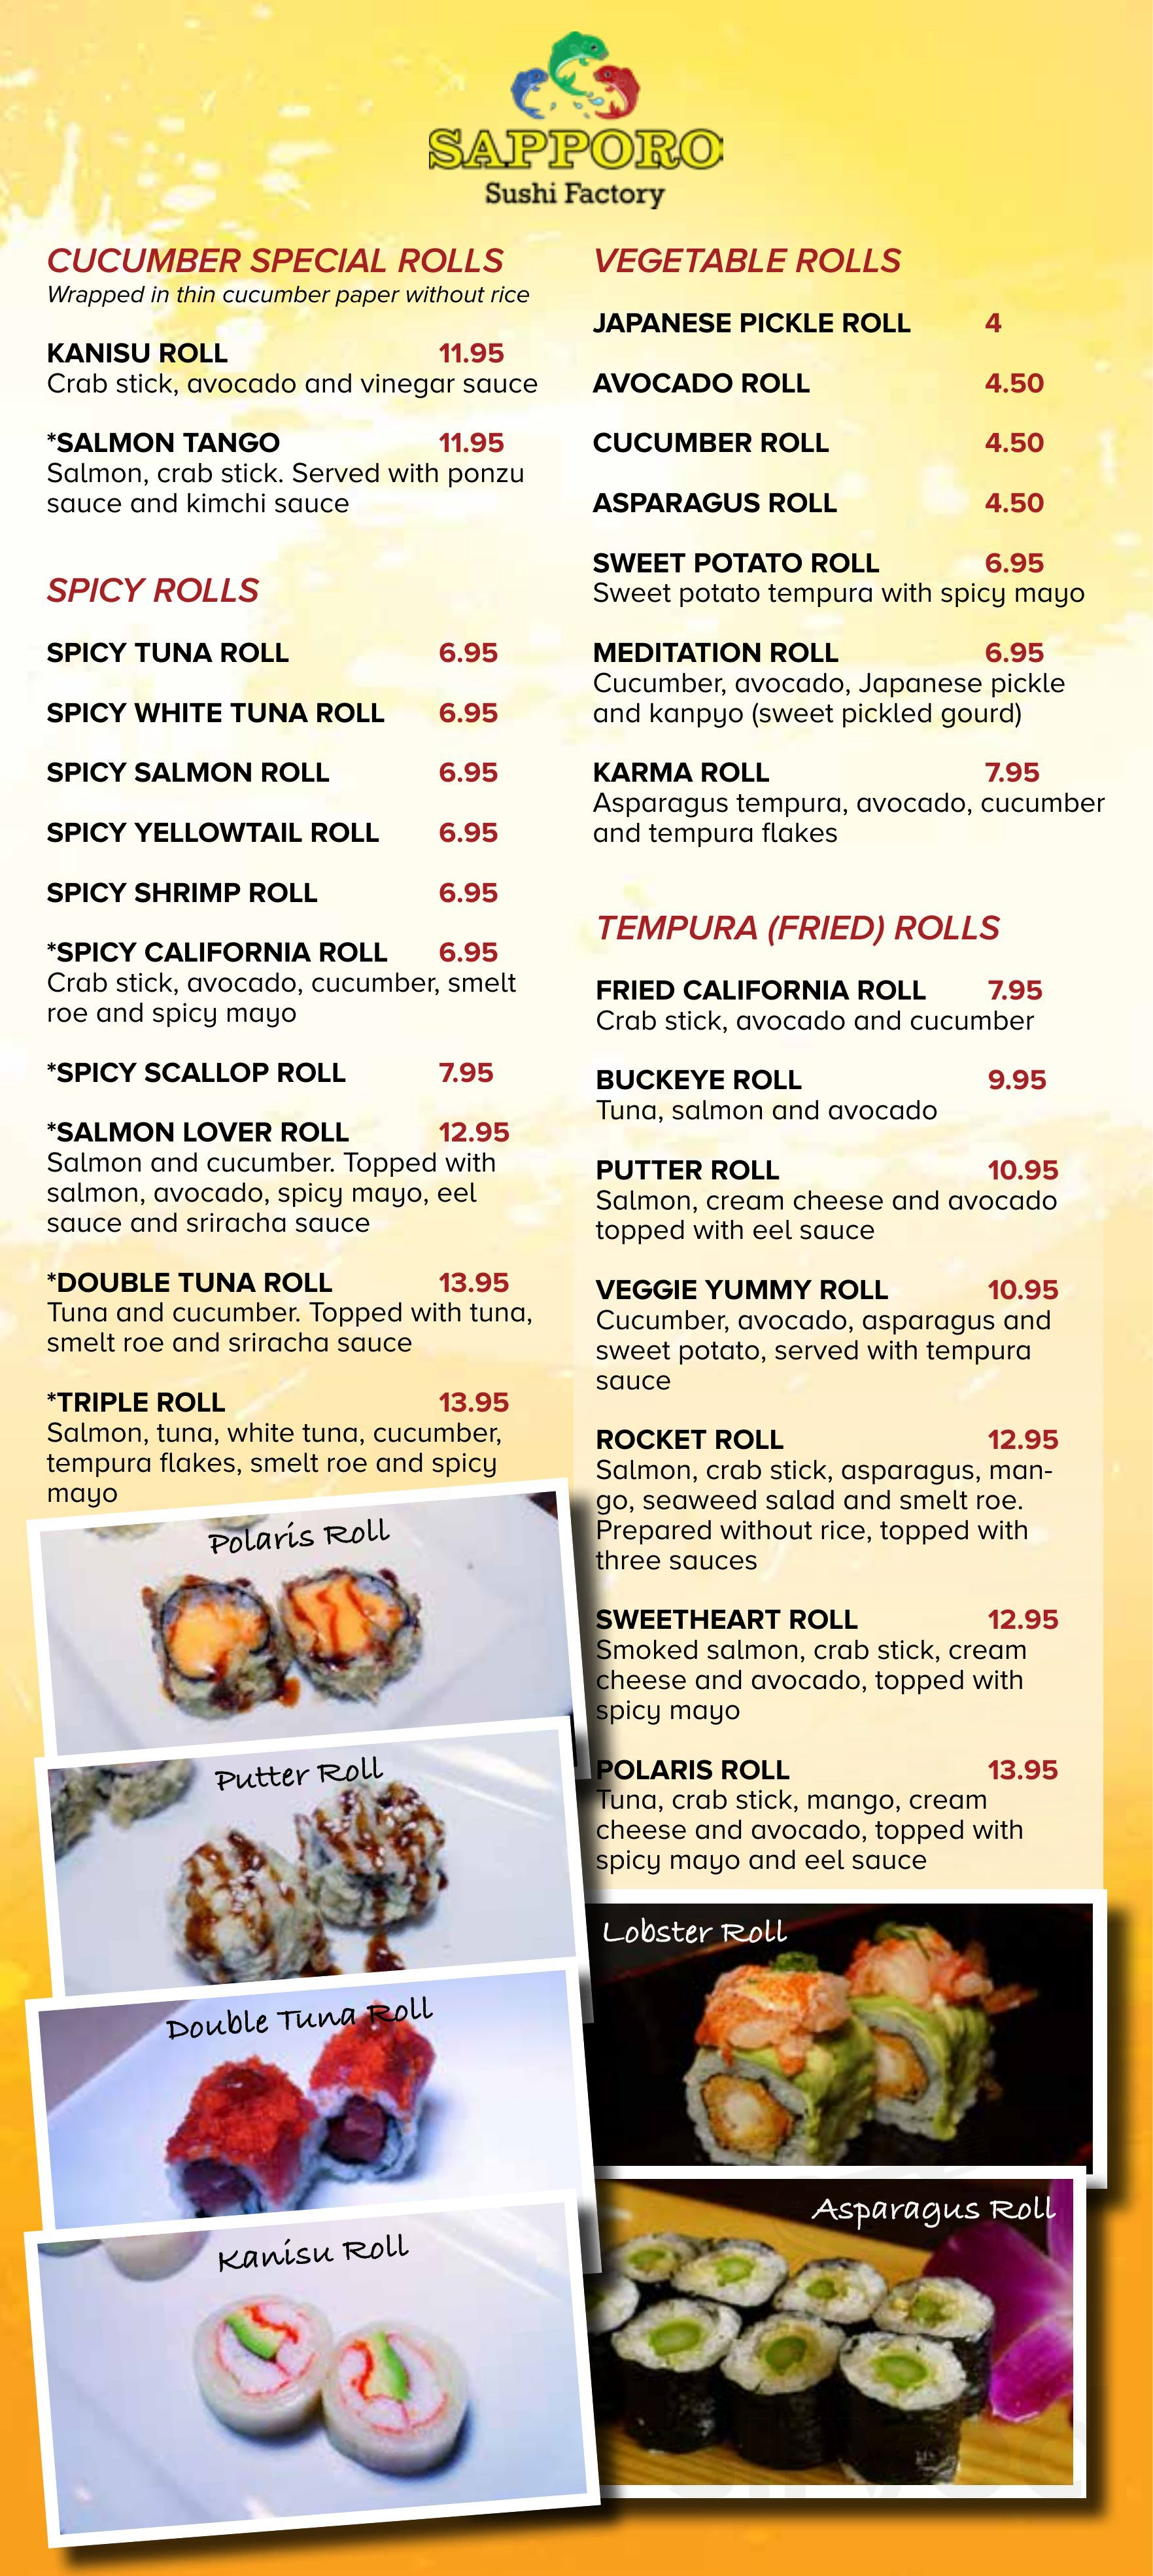 Menu for Sapporo Sushi Factory in Westerville, Ohio, USA